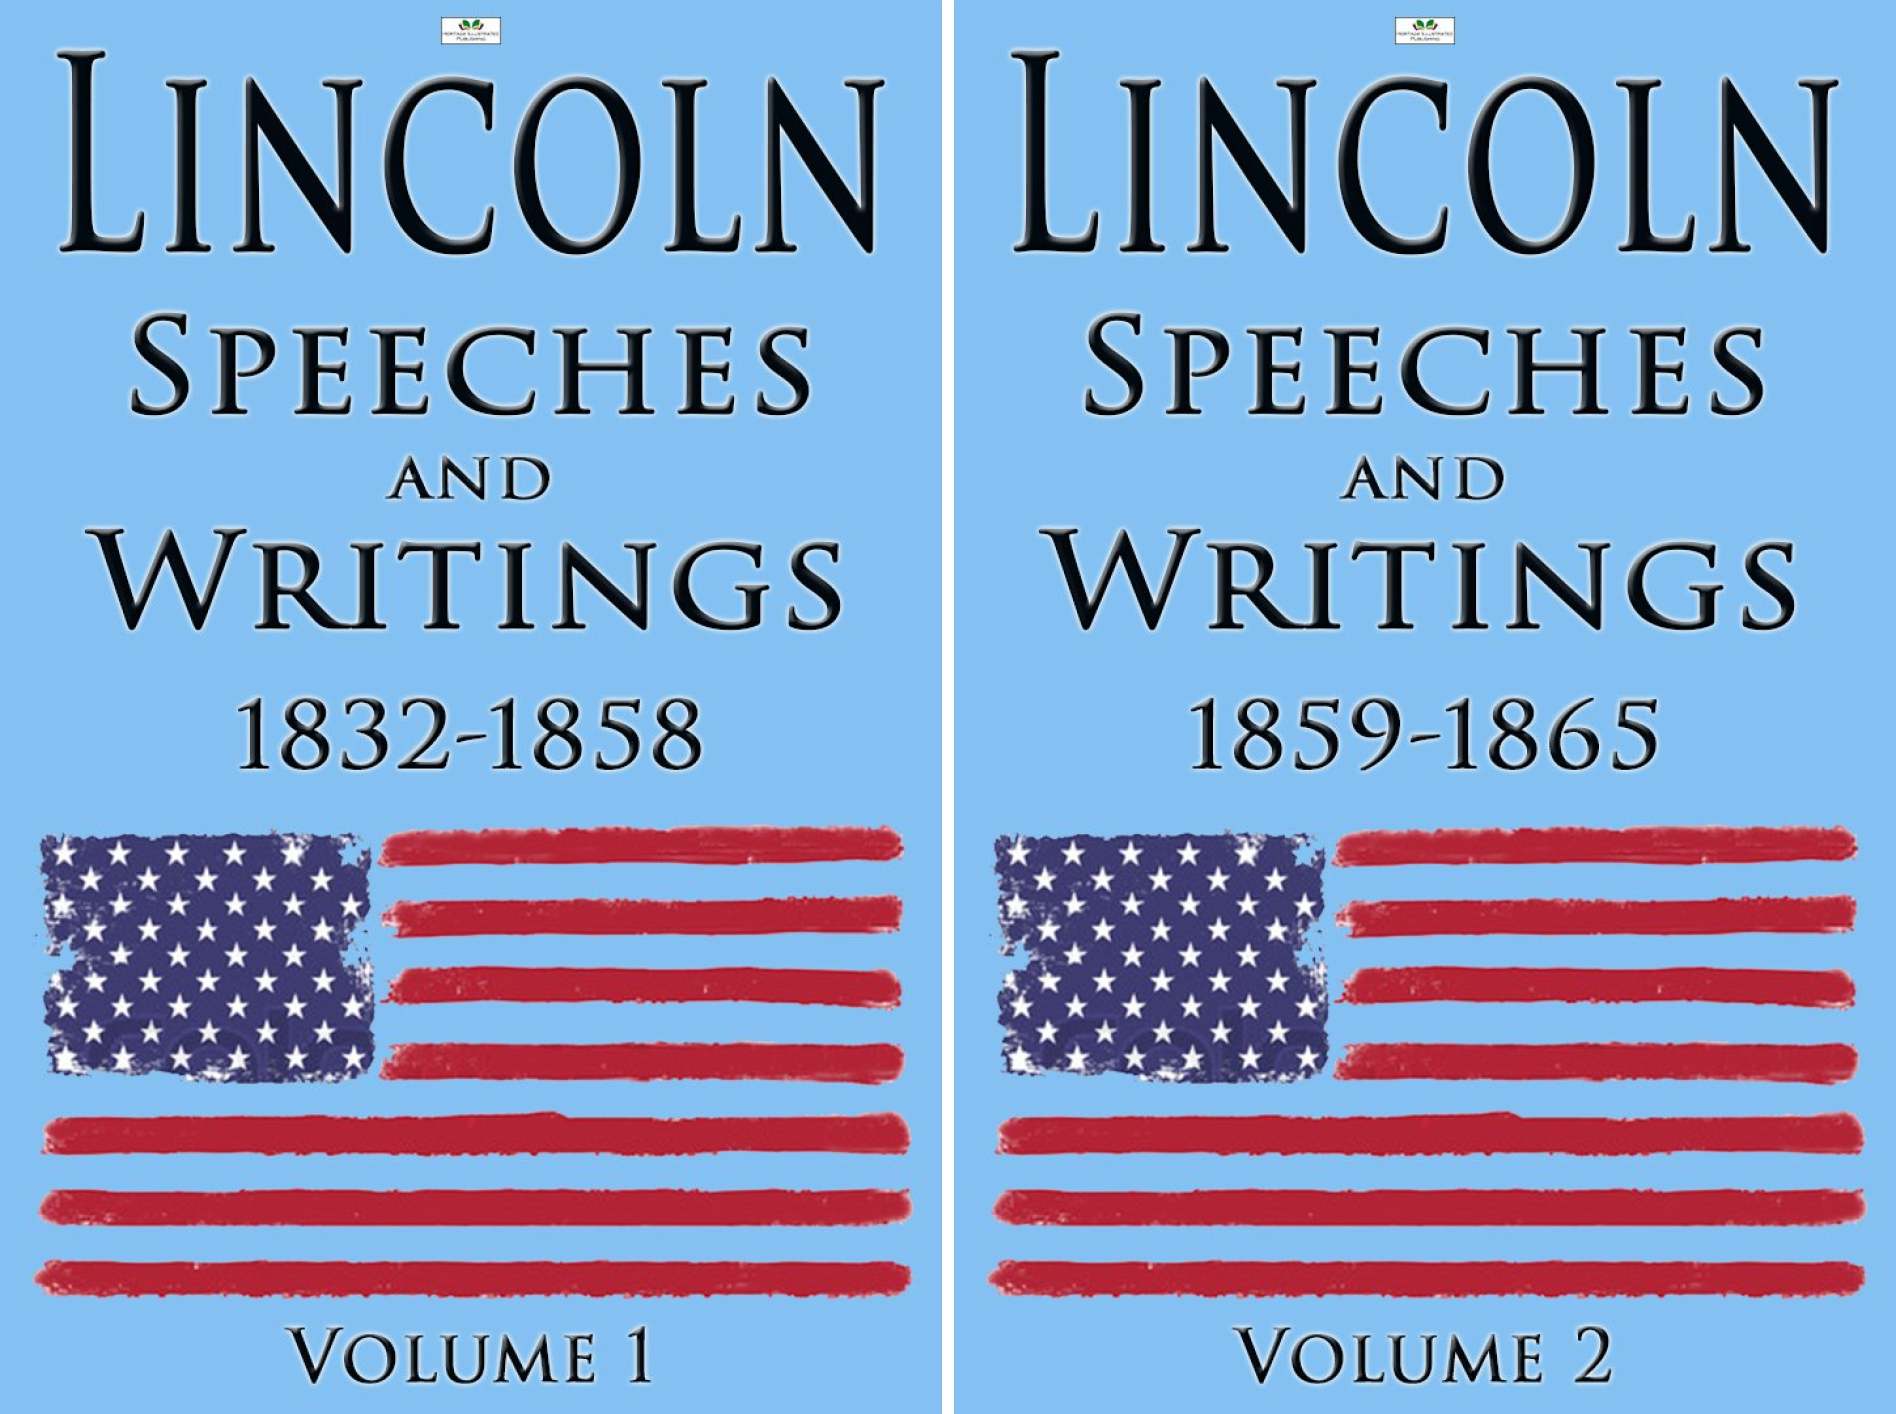 lincoln writings Lincoln's main objective was protectionism for northern manufacturers and the creation of a massive spoils system, writes thomas dilorenzo.